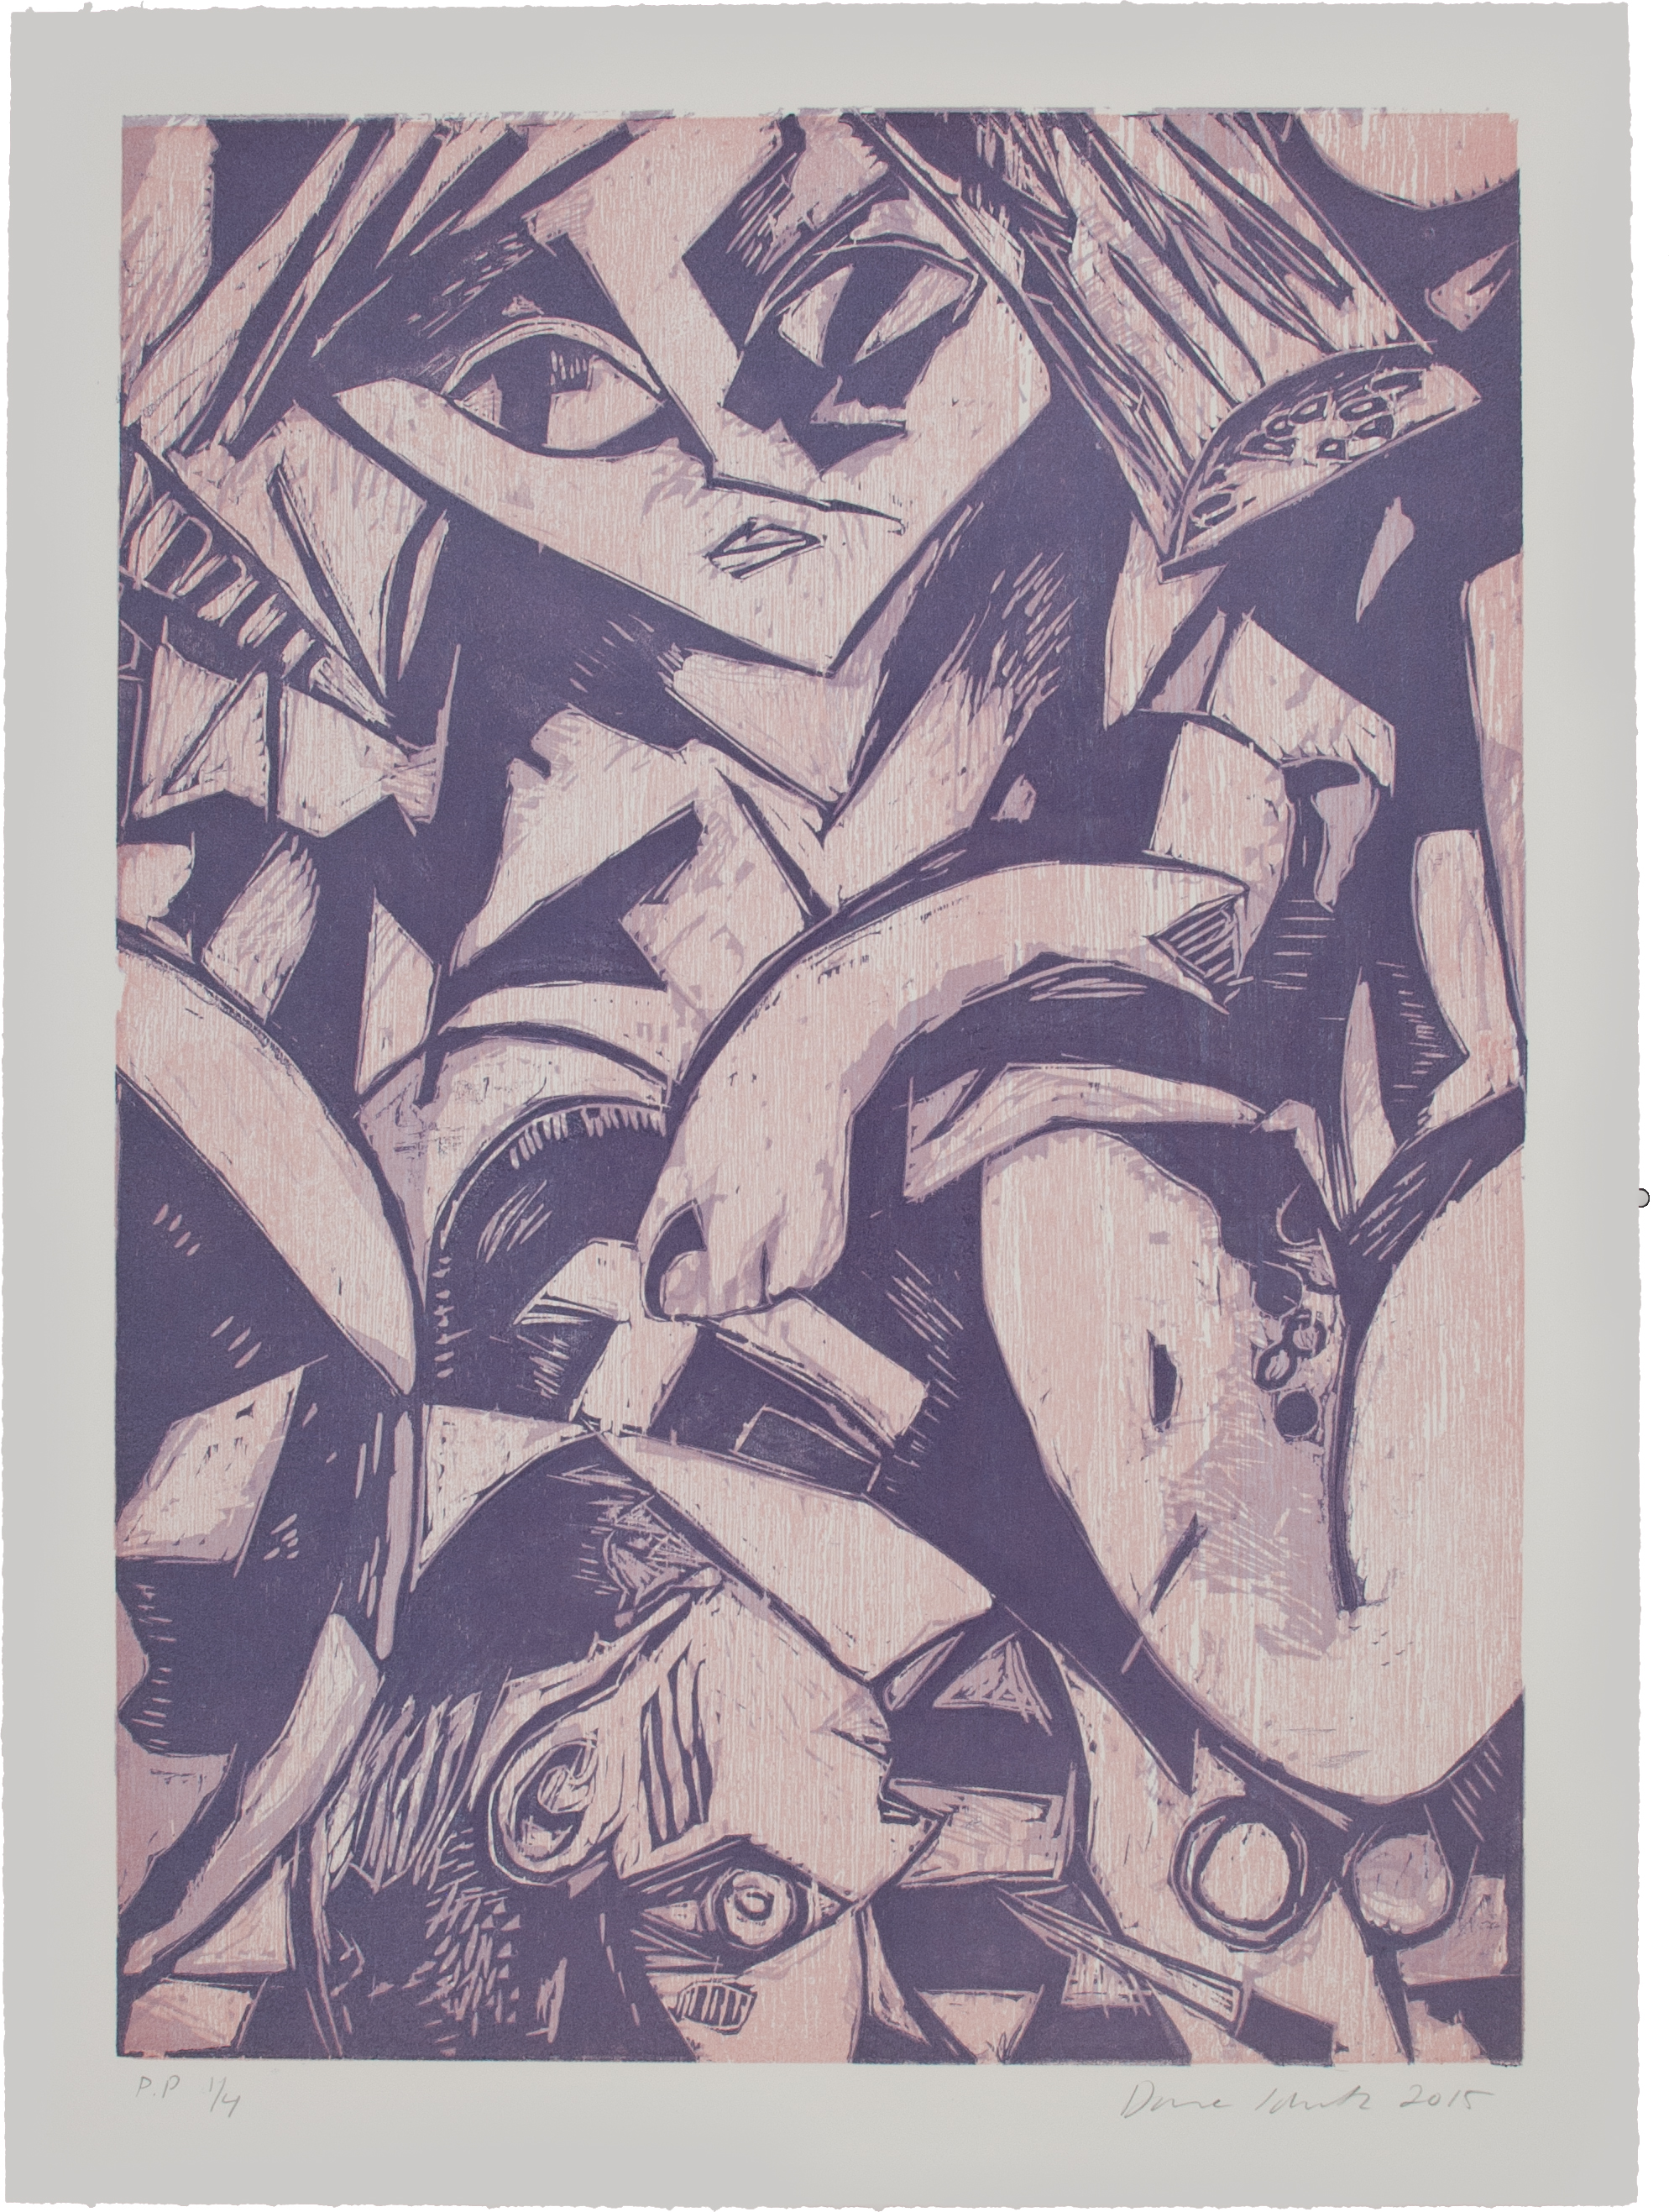 Dana Schutz.   Back Surgery In Bed,  2015. Woodcut. Sheet: 28 1/4 x 20 3/4 inches. Printed by Rob Swainston, Prints of Darkness; published by Kestnergesellschaft, Hannover, Germany. Edition: 50. Courtesy Rob Swainston and Prints of Darkness. © 2019 Dana Schutz